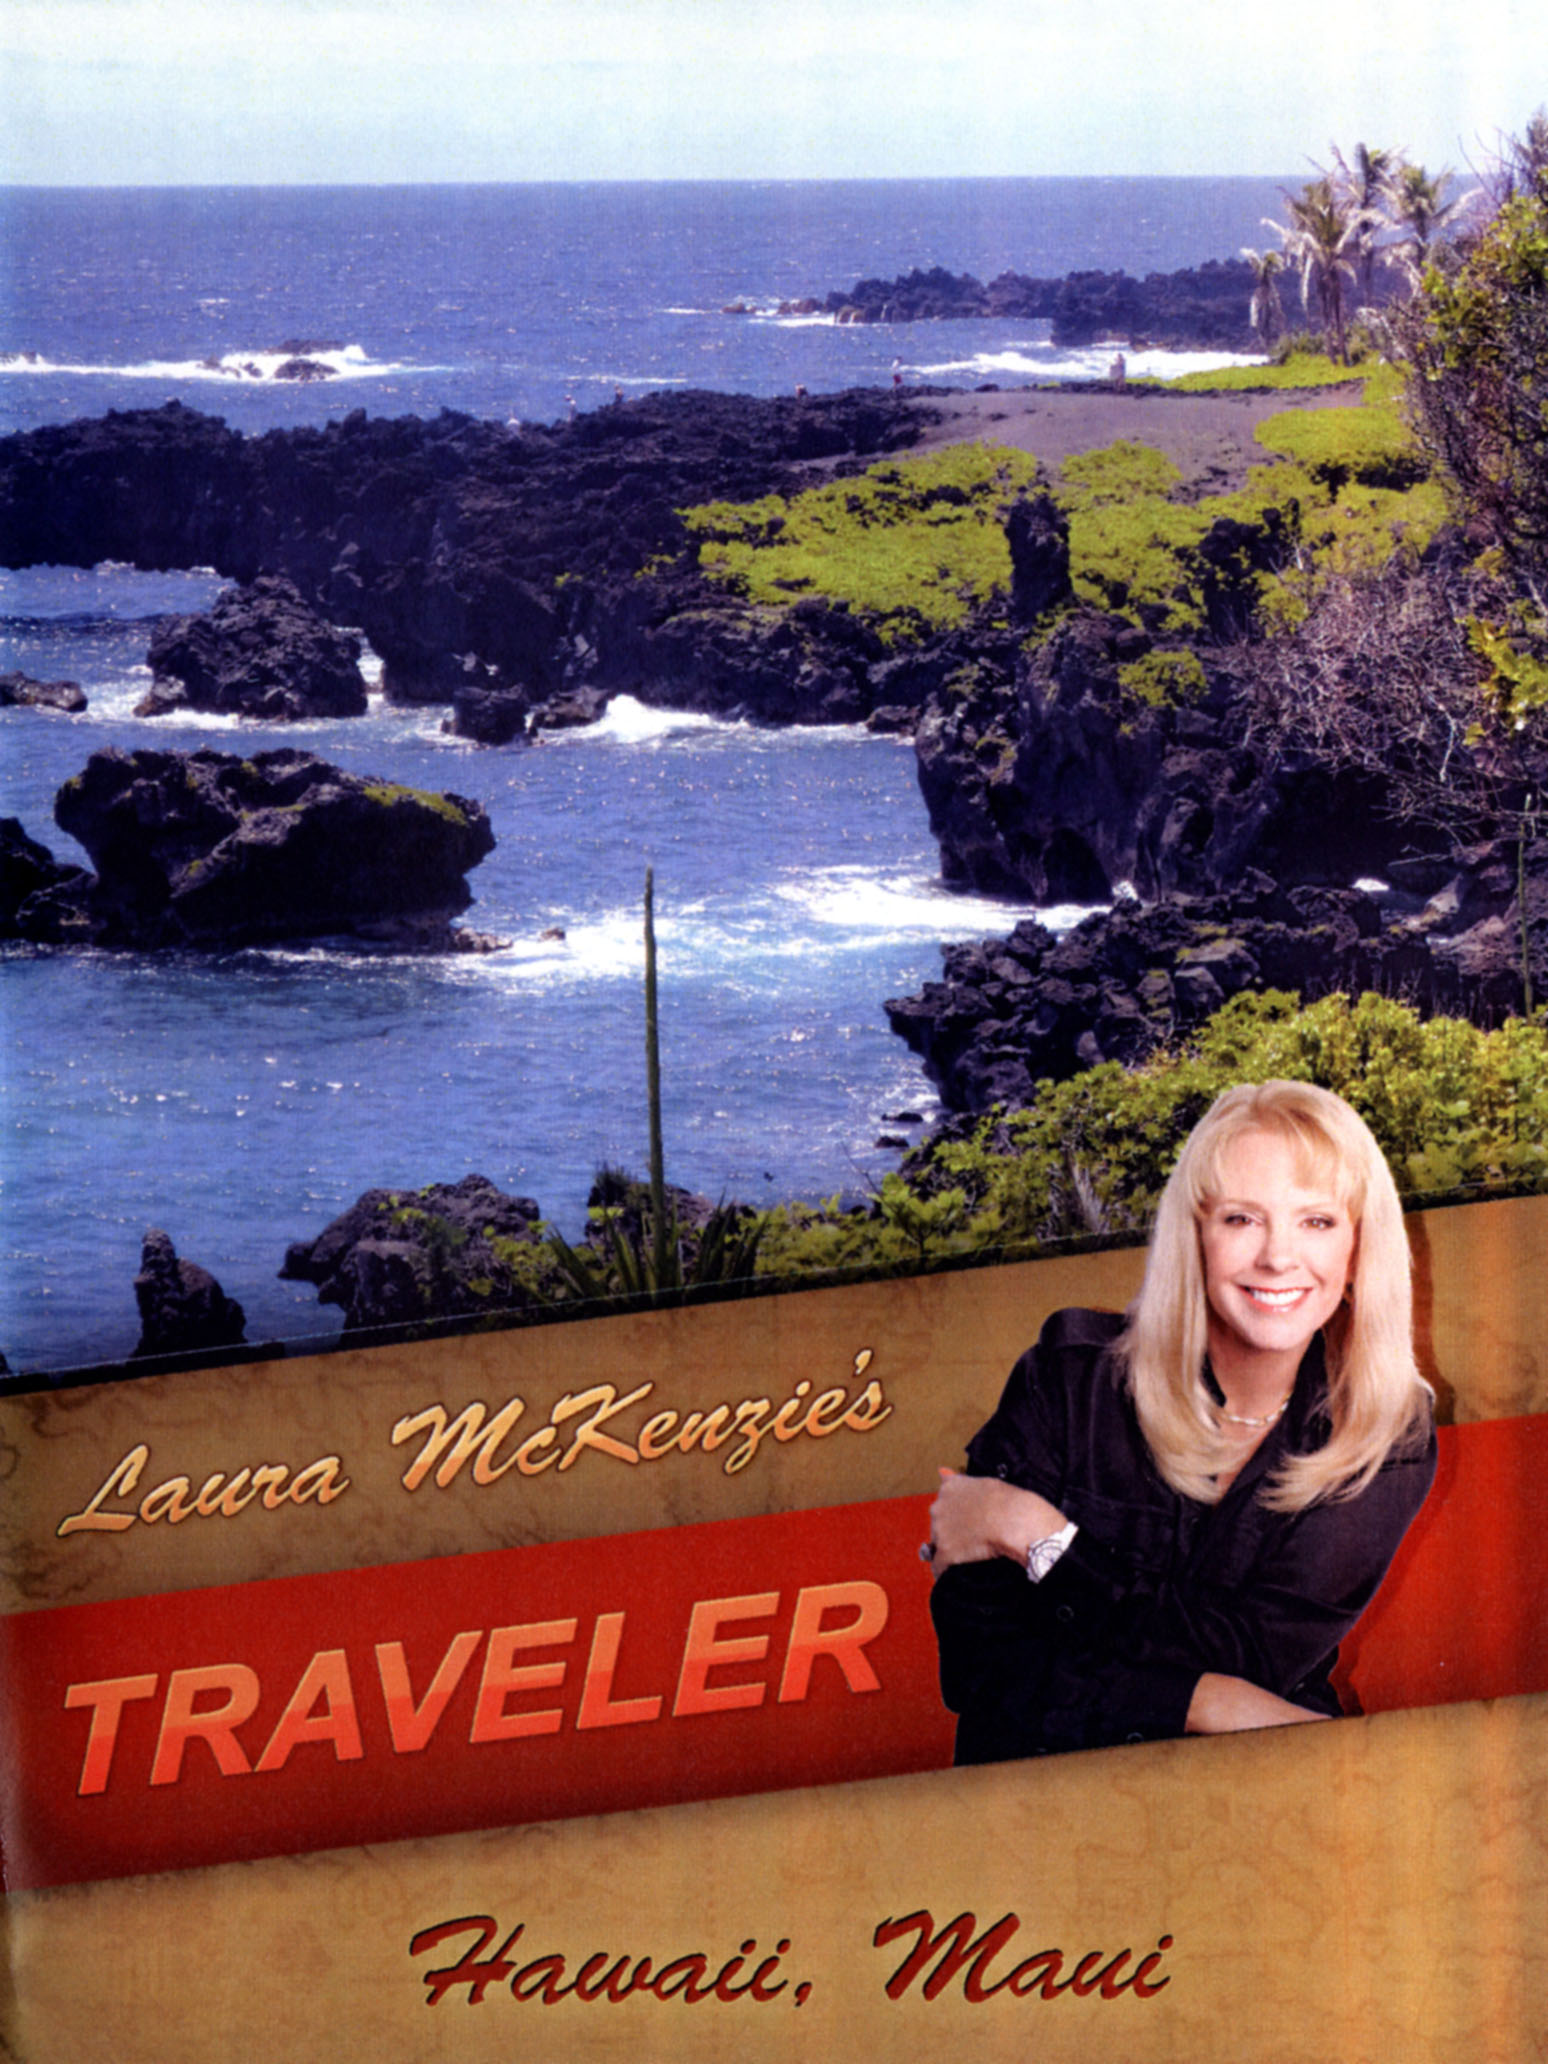 Laura McKenzie's Traveler: Hawaii, Maui